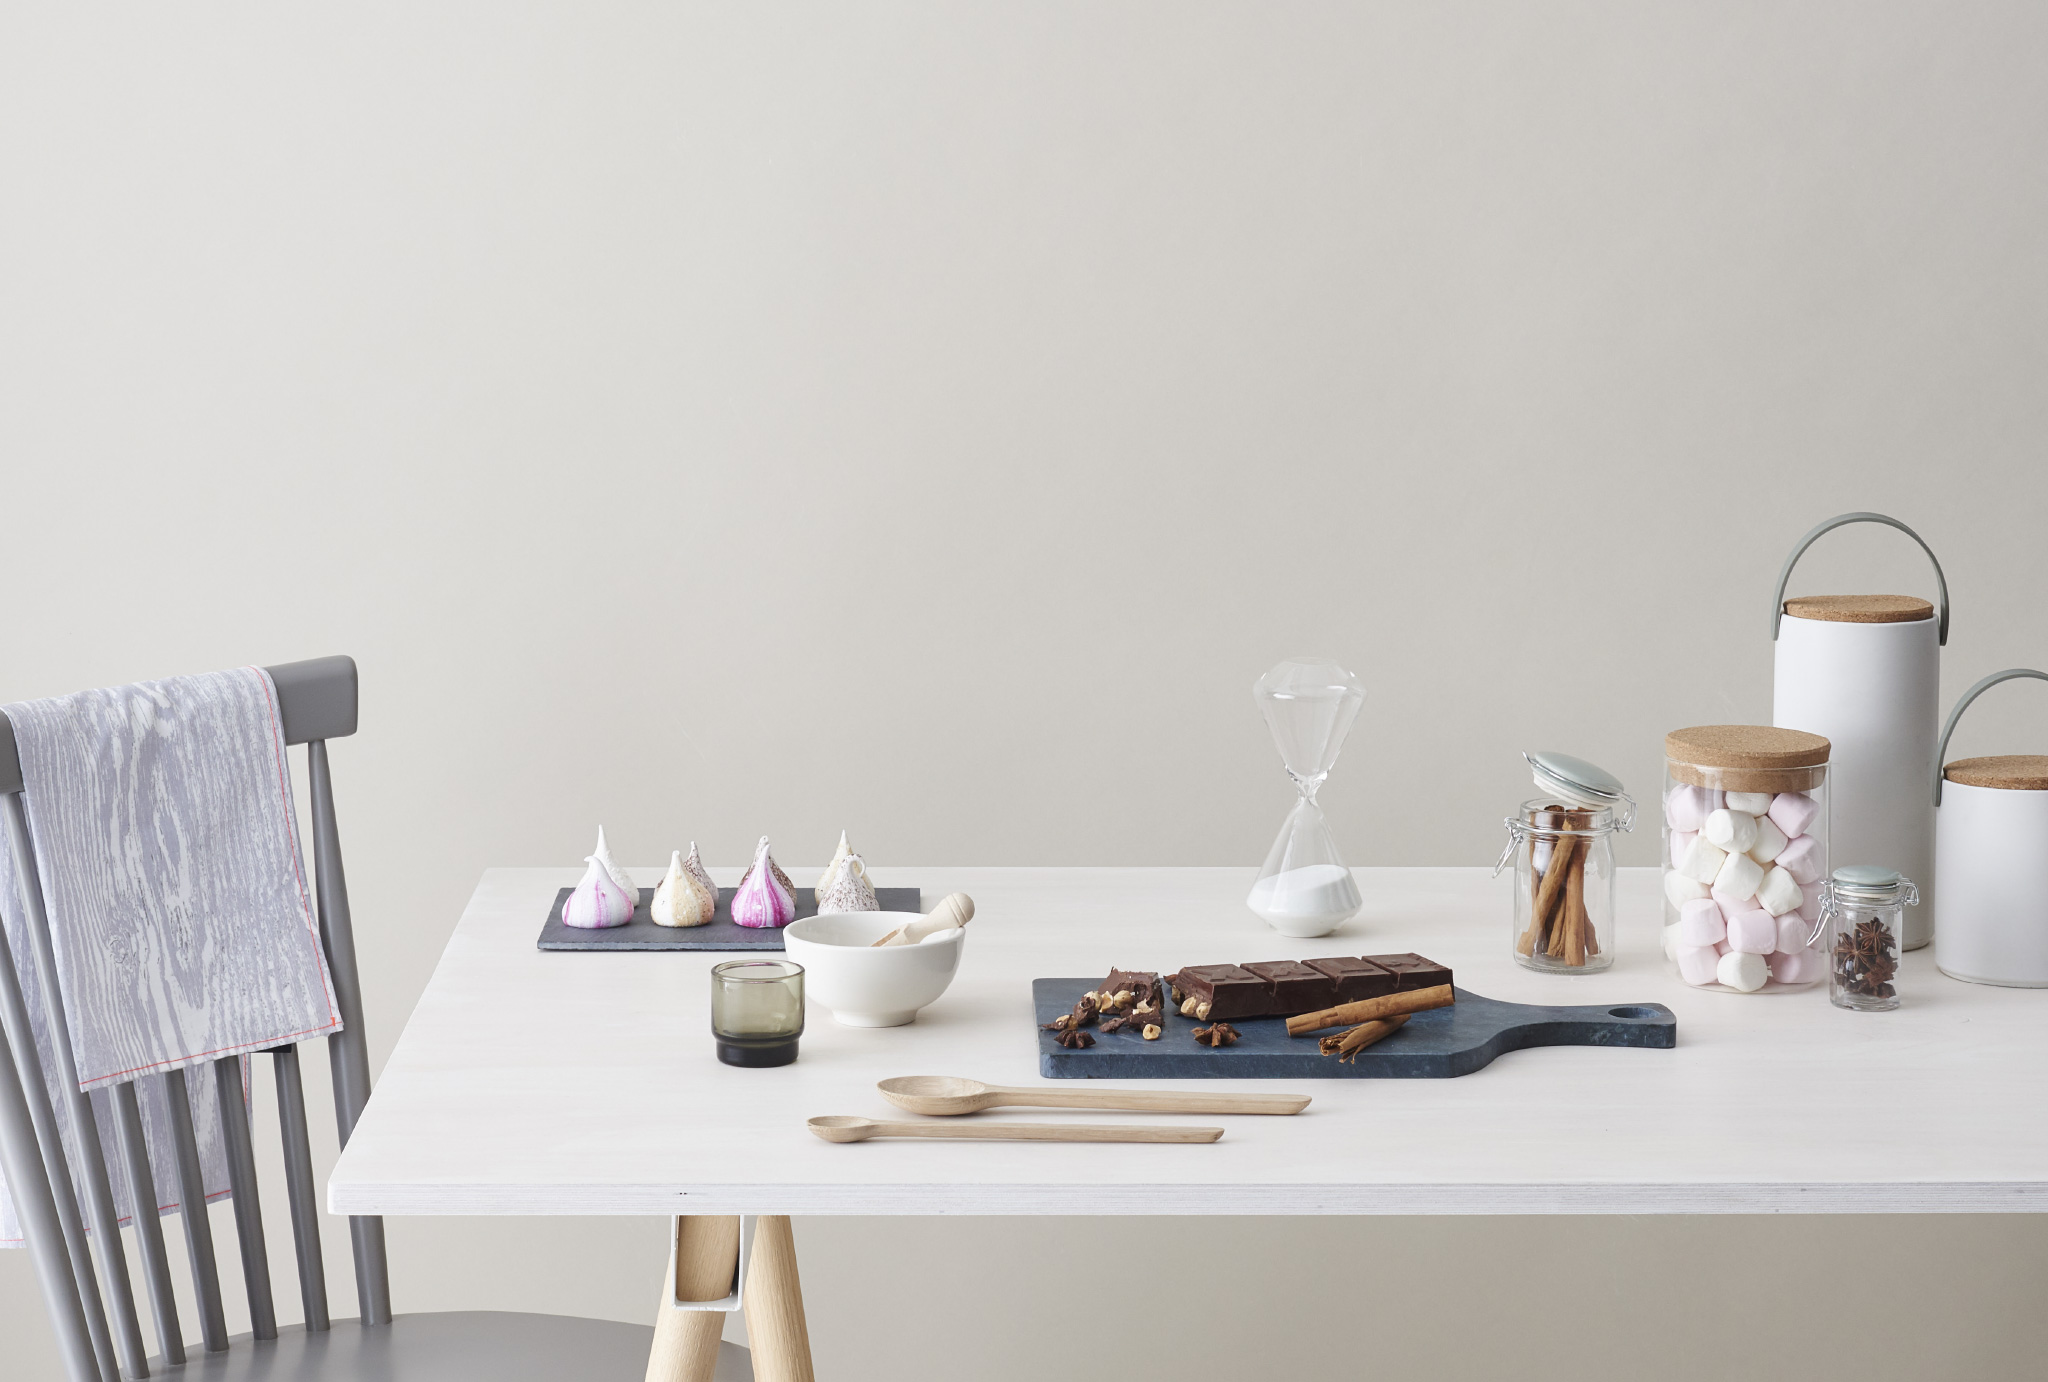 chair and table with different sweets on it, viewed from the side